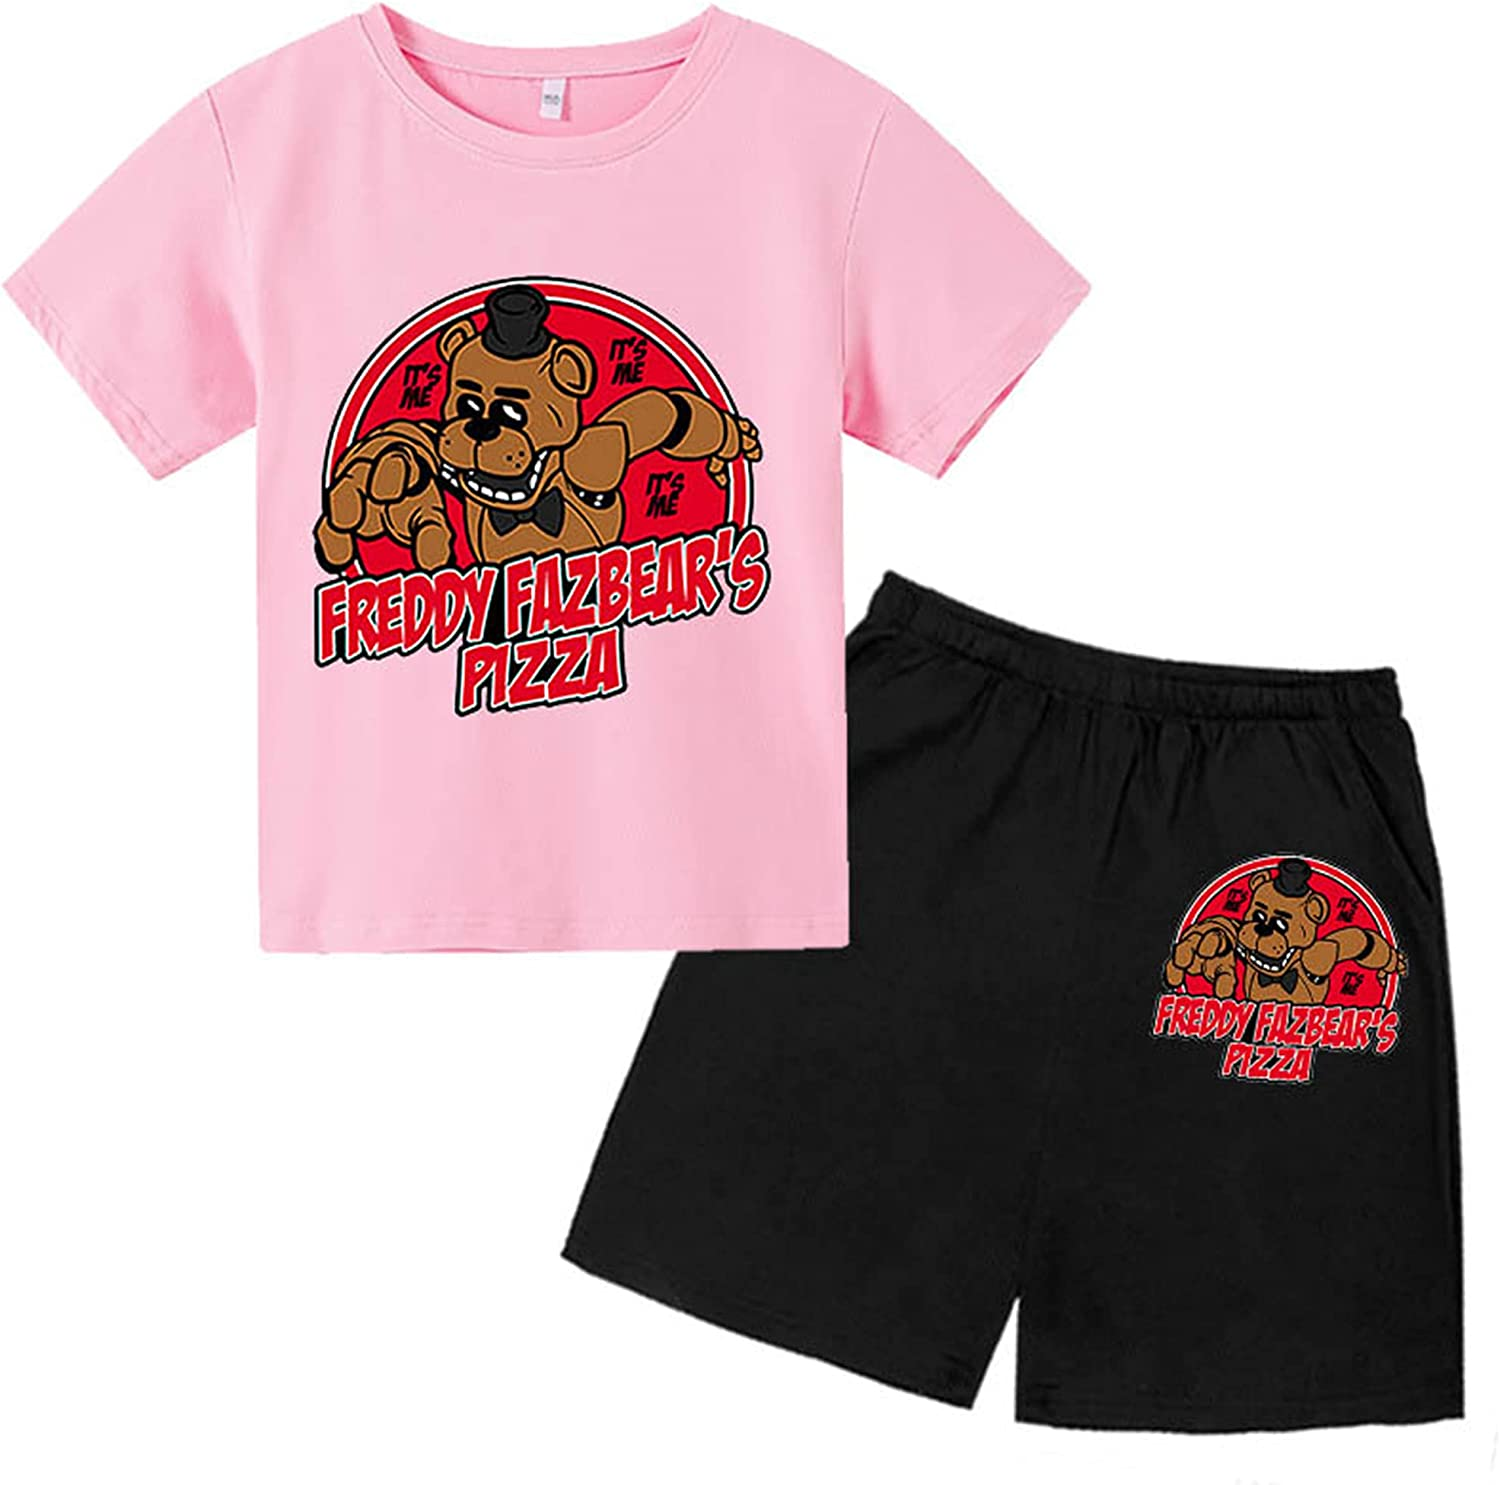 Five Nights at Fre-ddy's Casual T-Shirt Short Sleeve Shorts Suit for Boys and Girls